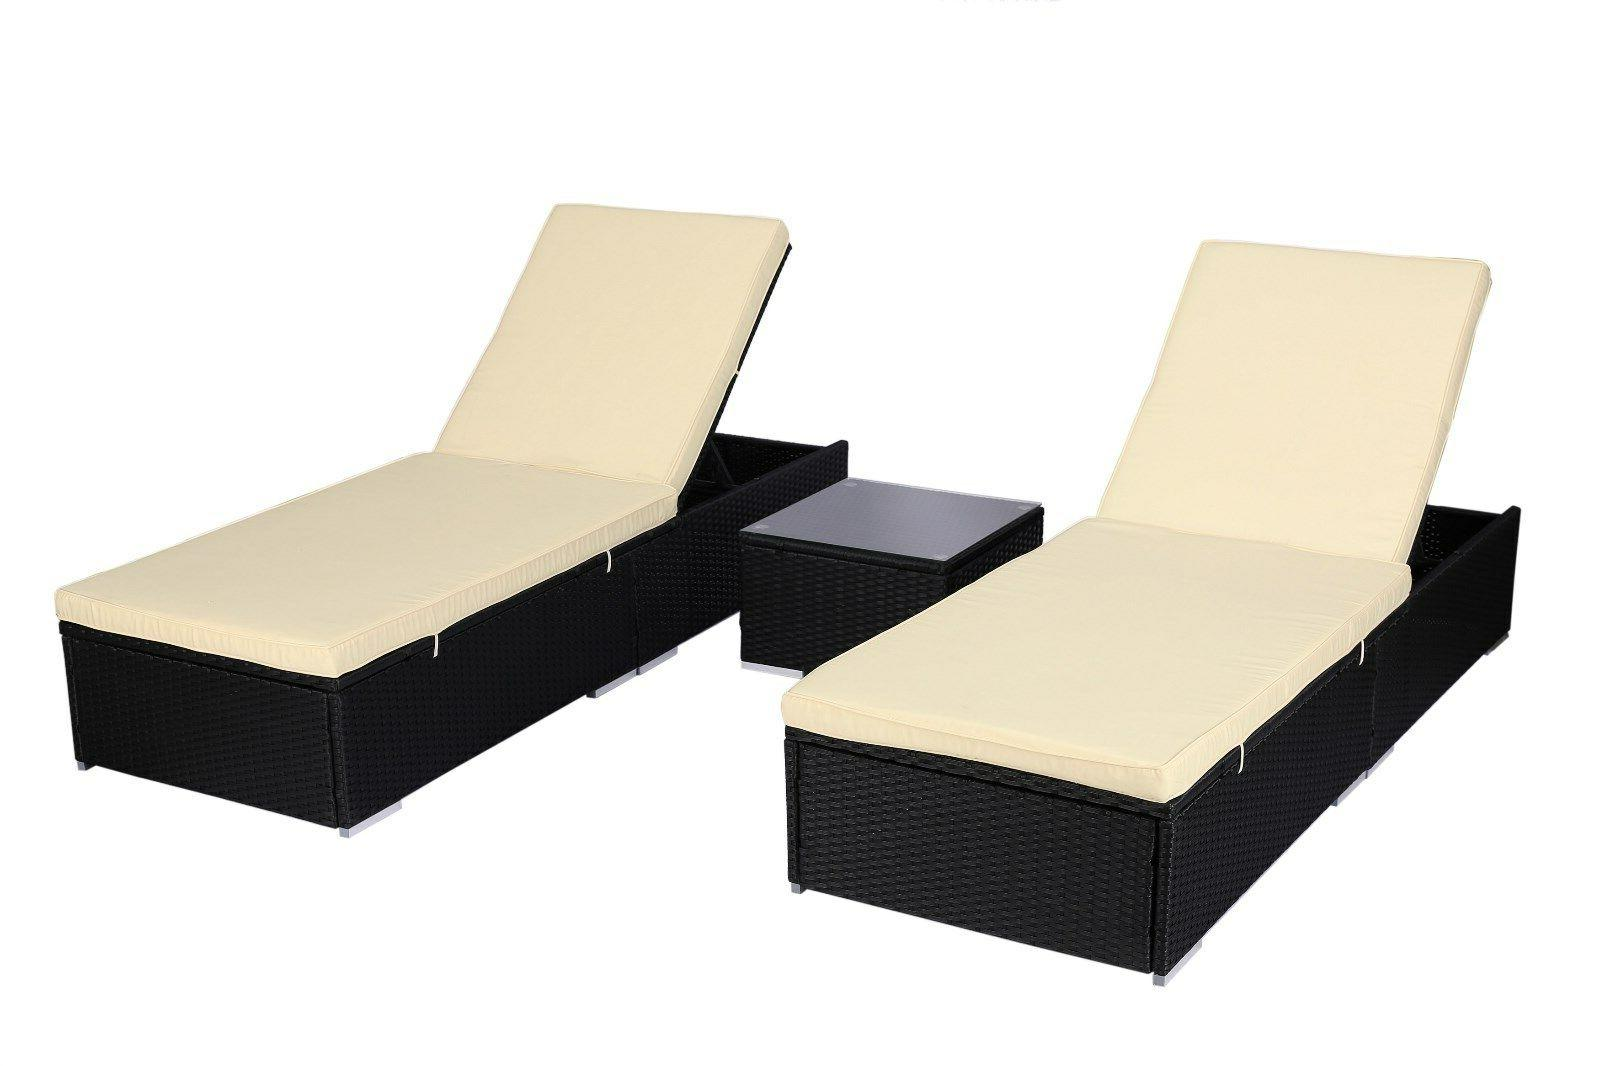 3 Piece PE Rattan Chaise Lounge Bed Set w/Table